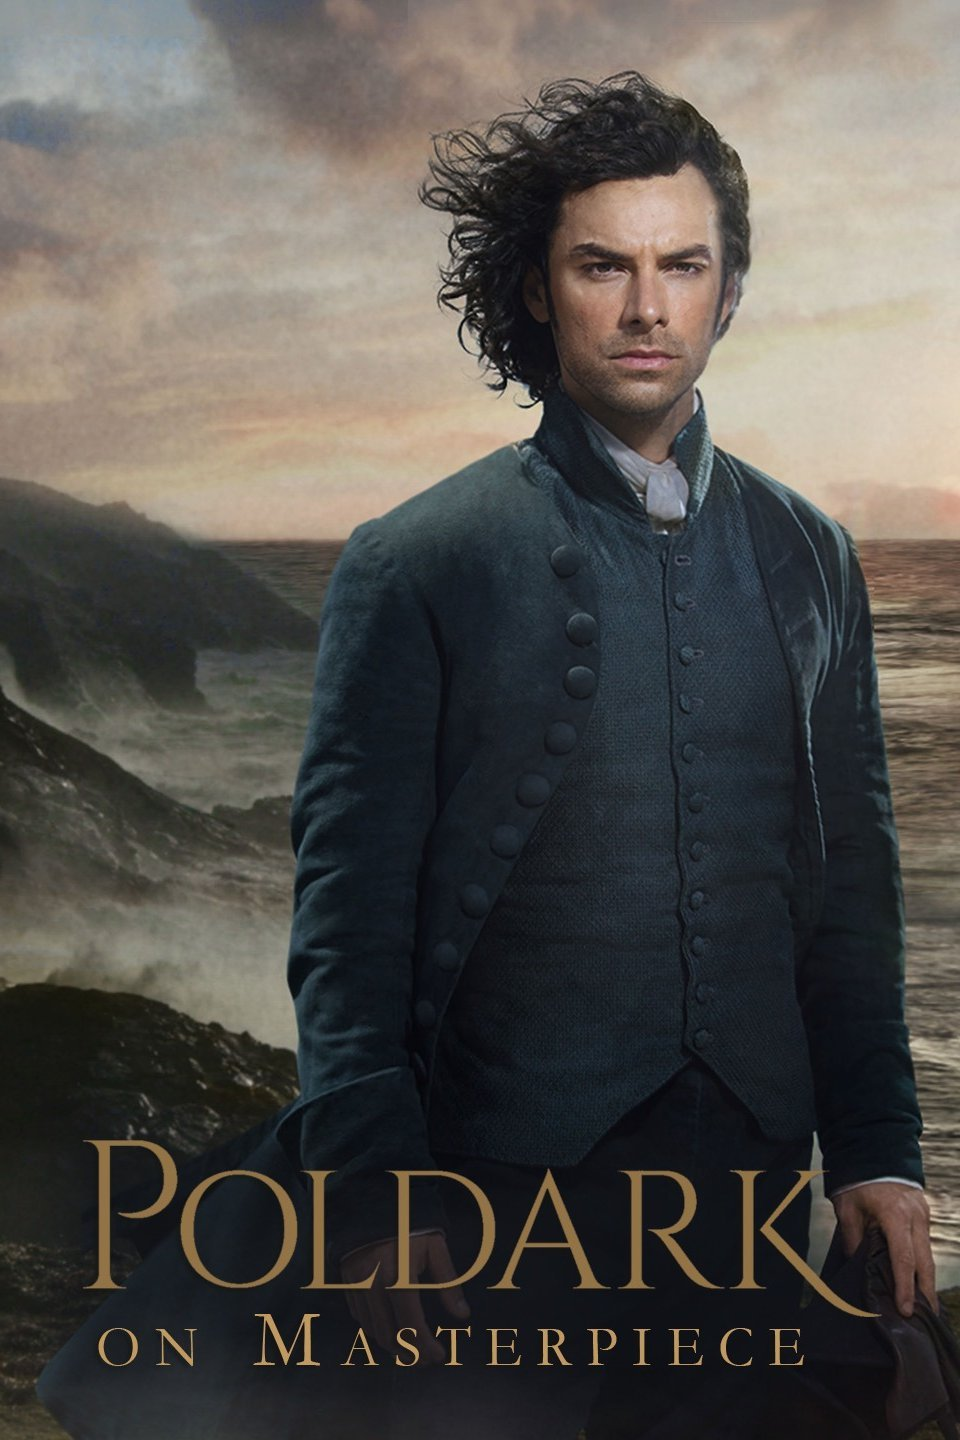 Poldark Season 3 Episode 1 Download HDTV 480p & 720p